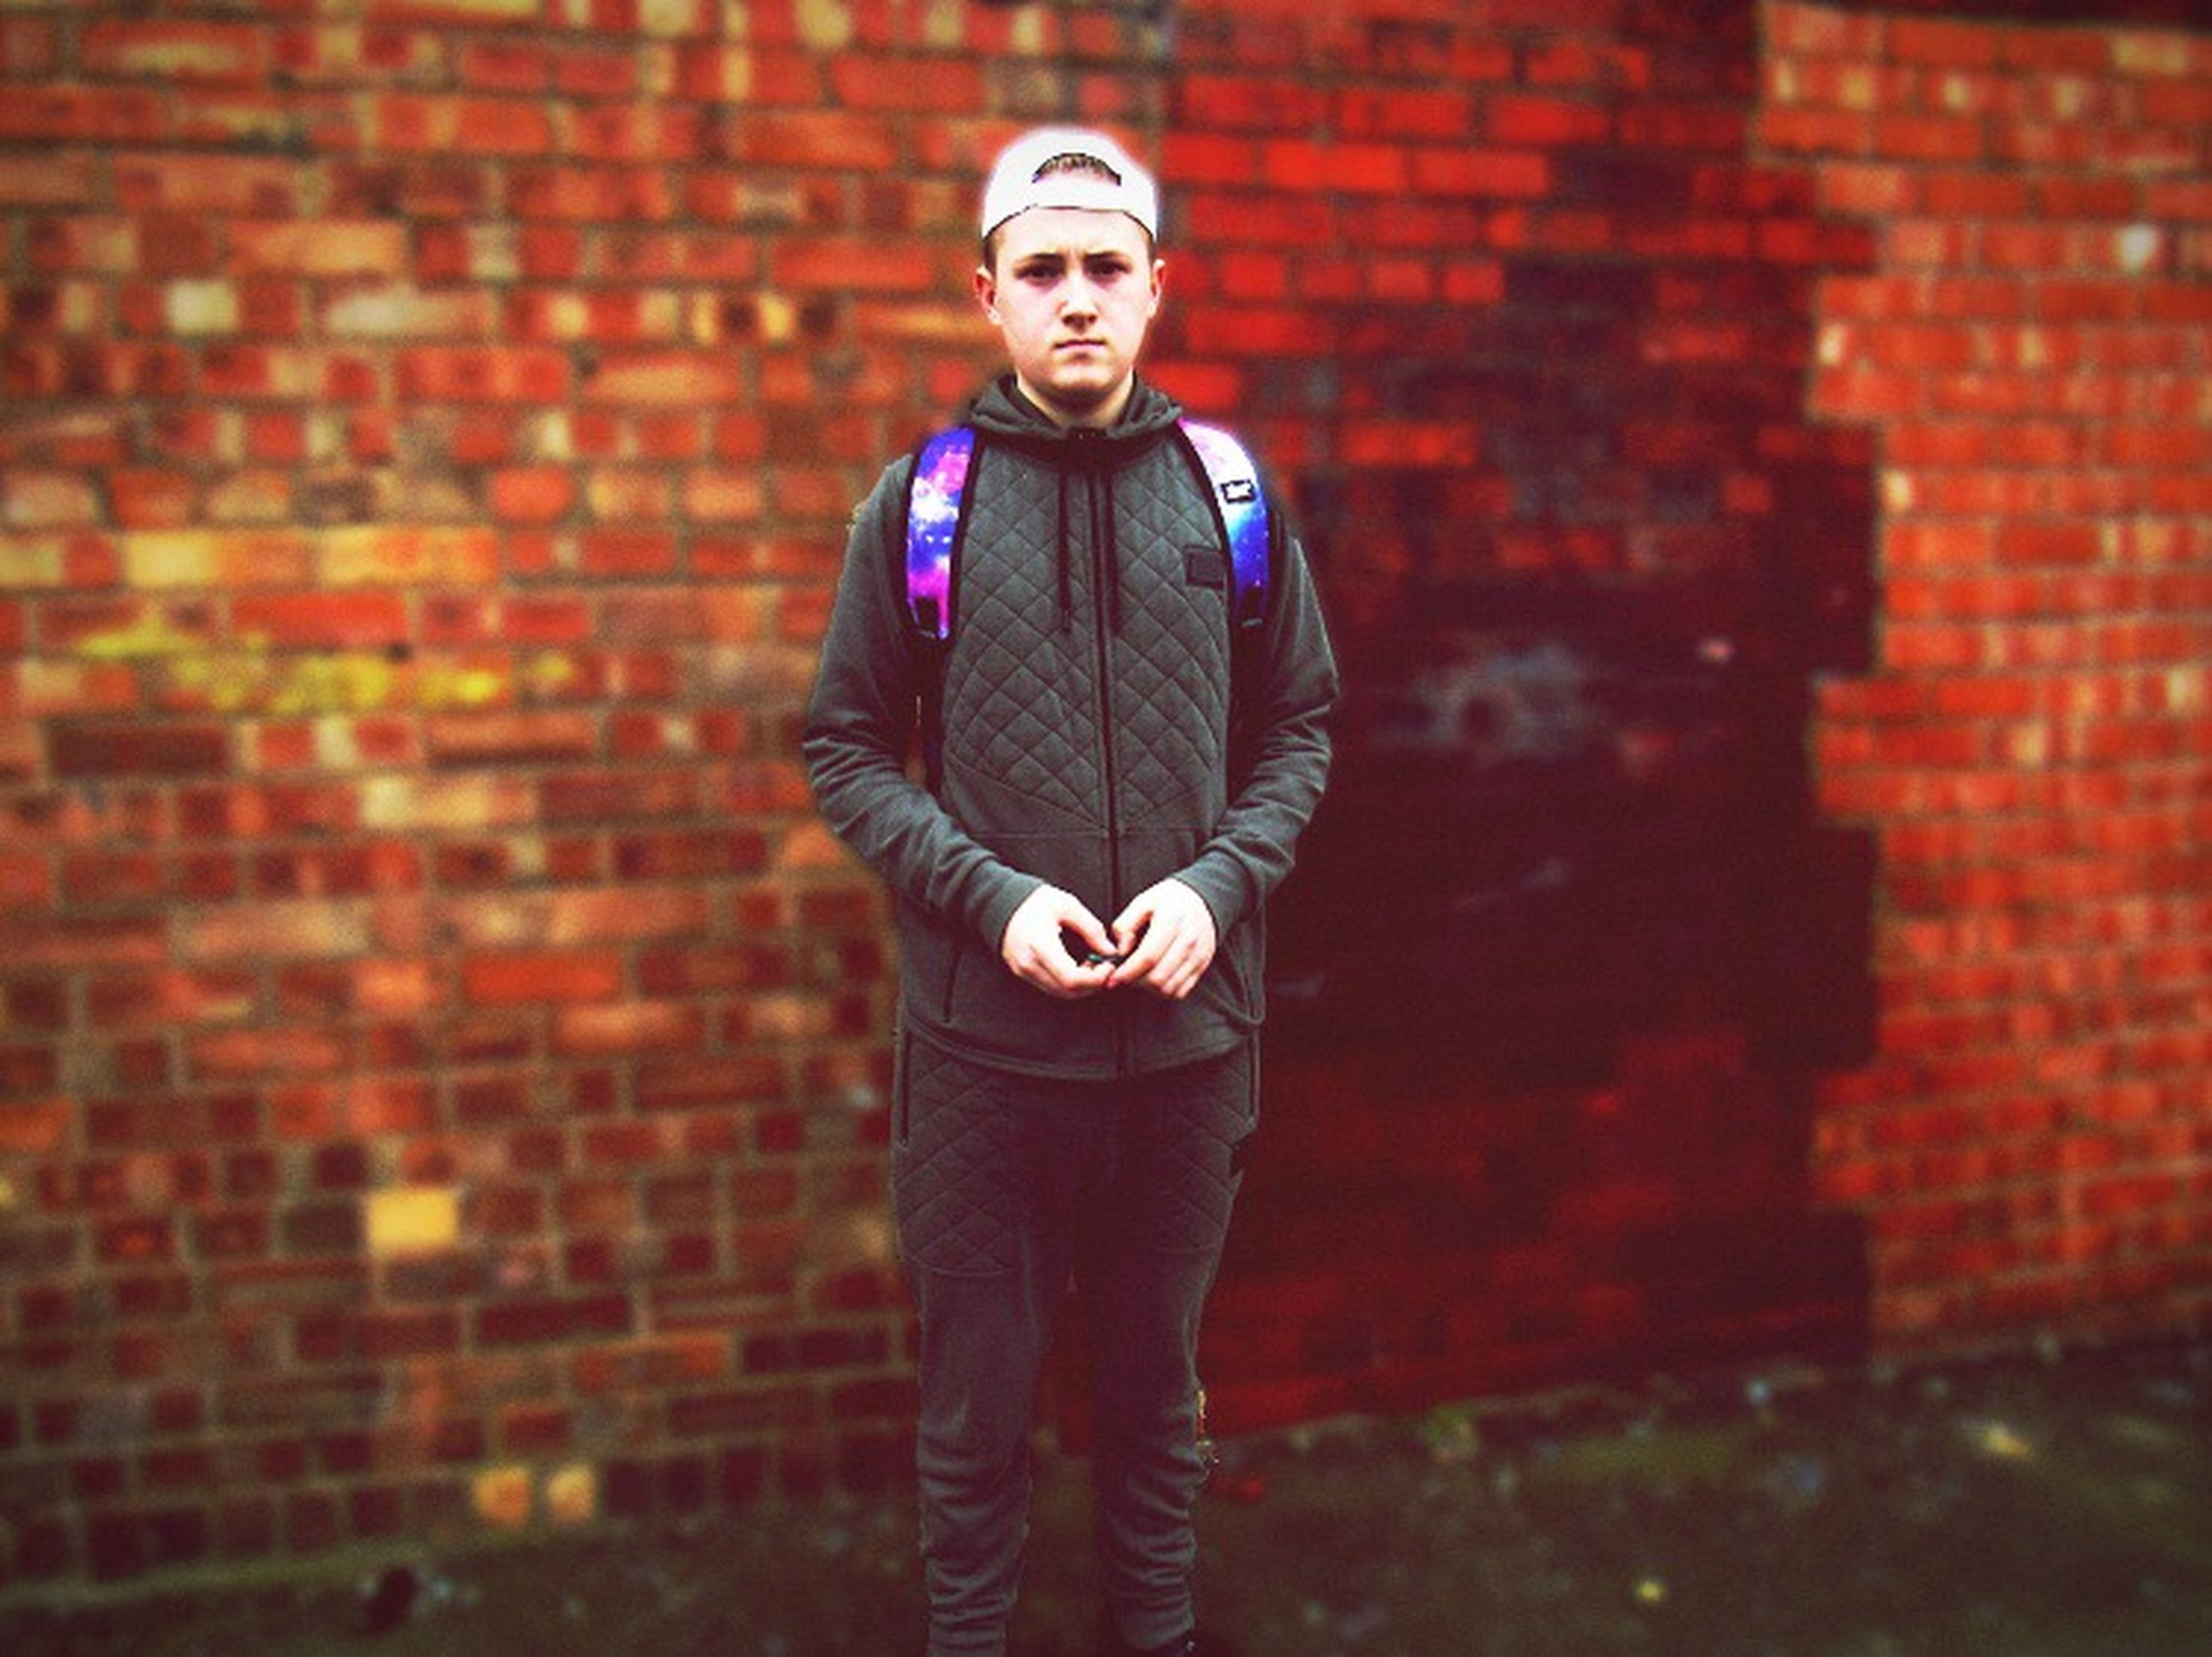 young adult, looking at camera, young men, portrait, one young man only, only men, standing, brick wall, attitude, one person, one man only, adults only, confidence, men, hipster - person, city, adult, people, outdoors, real people, day